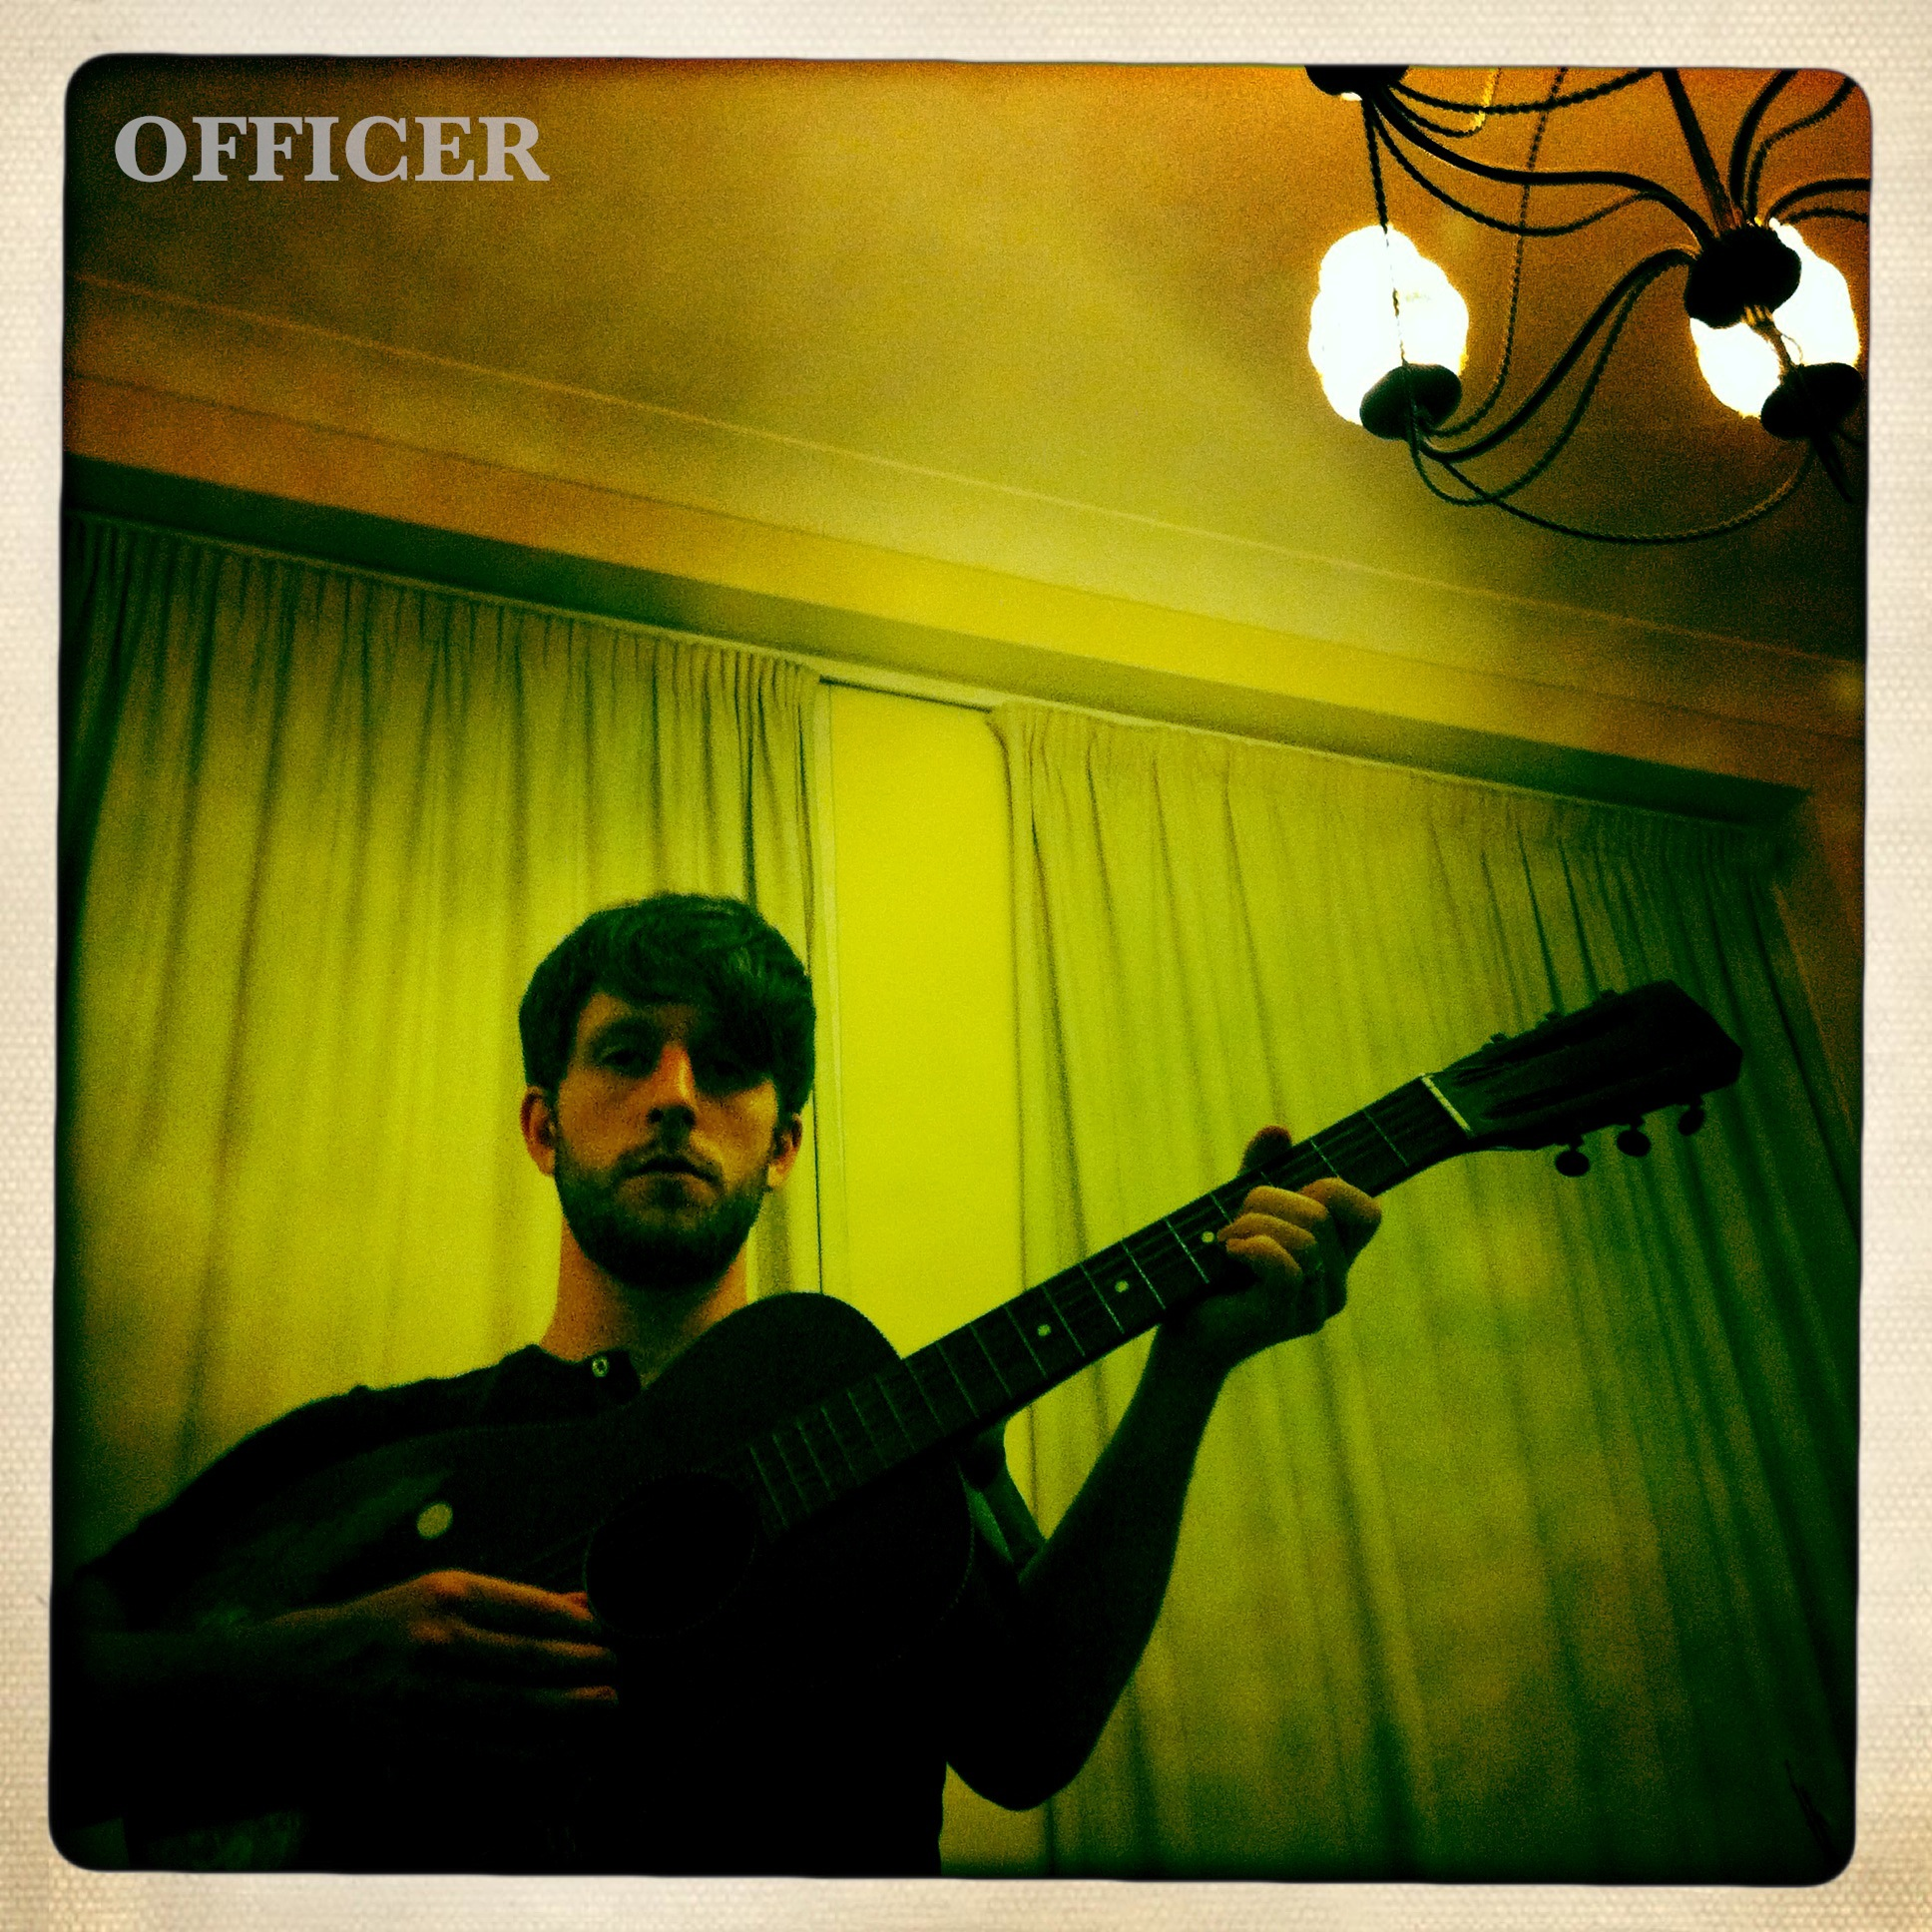 Officer writes for upcoming ep 'Old Solar'